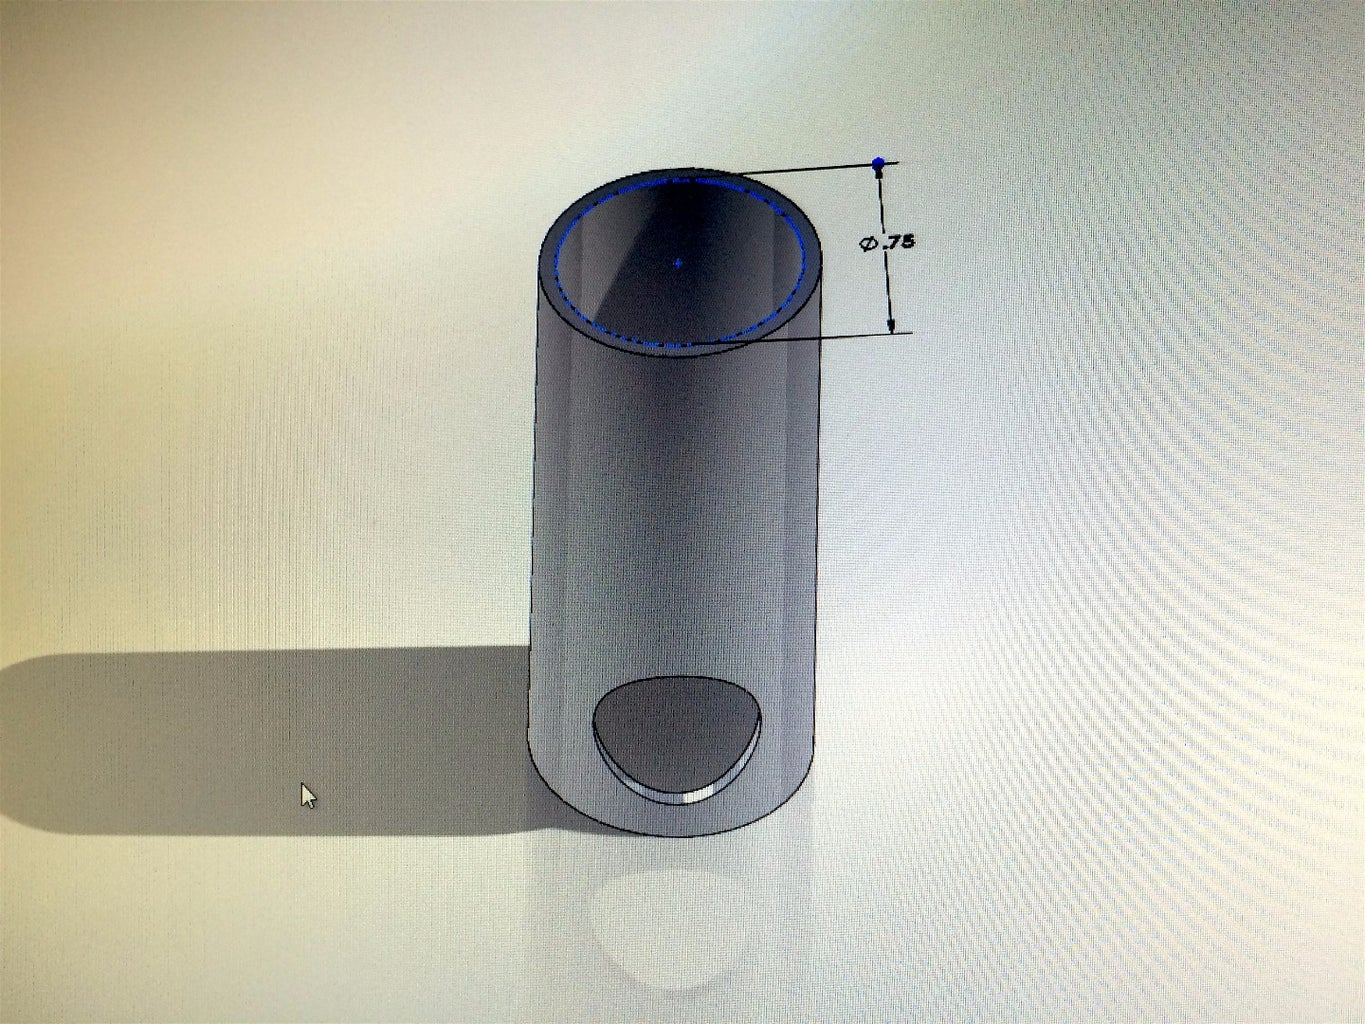 Modeling the Parts in CAD Program (Solidworks)